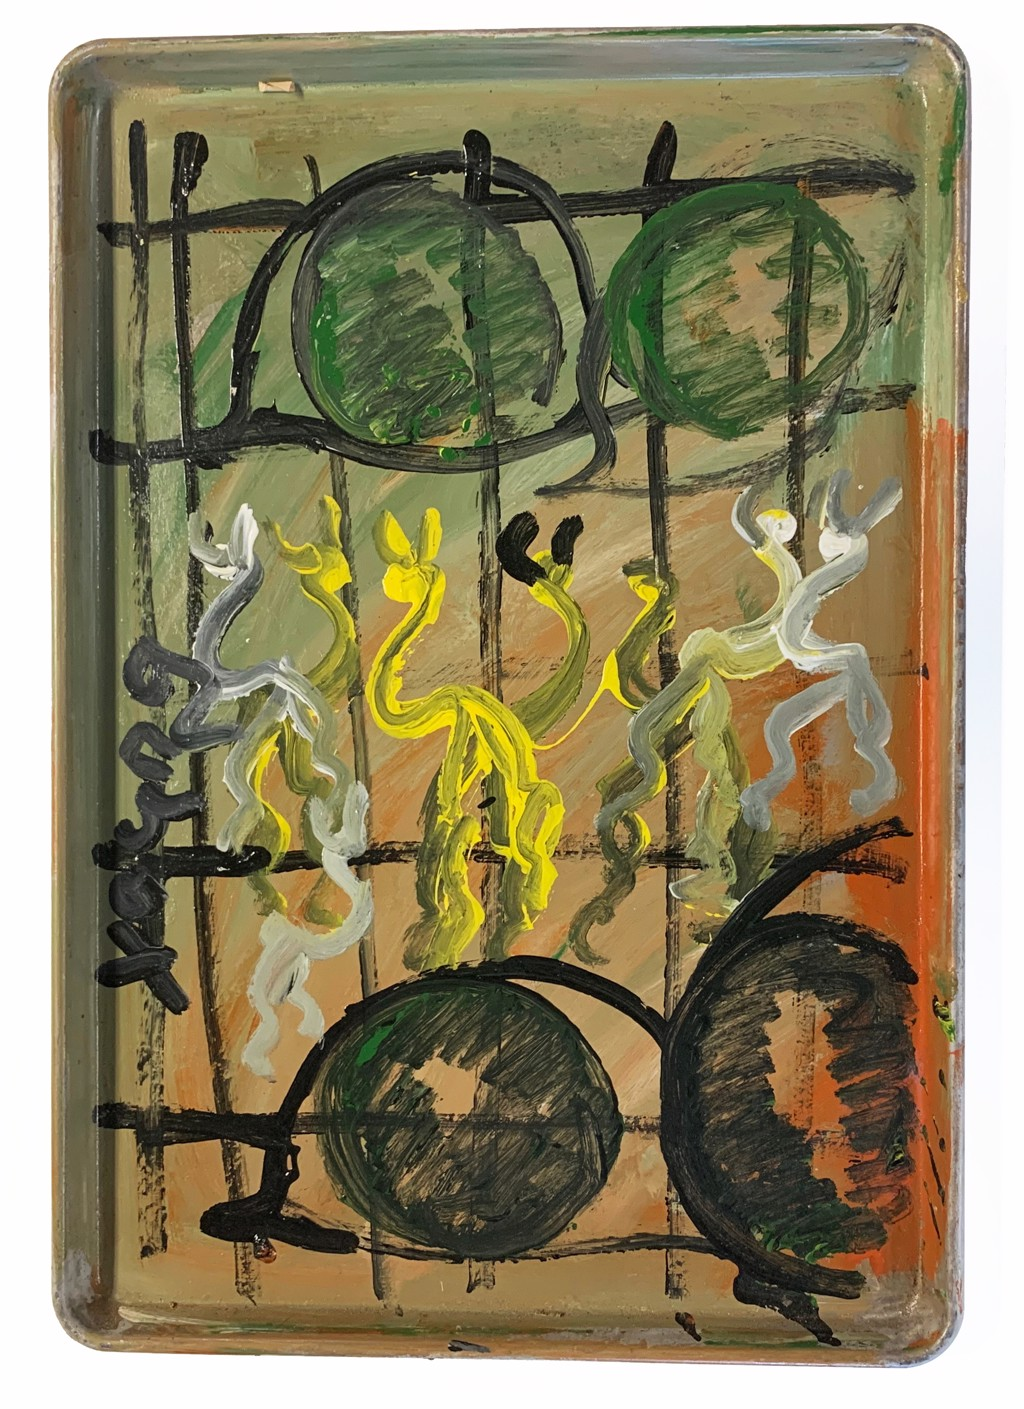 Behind Bars by Purvis Young (1943 - 2010)